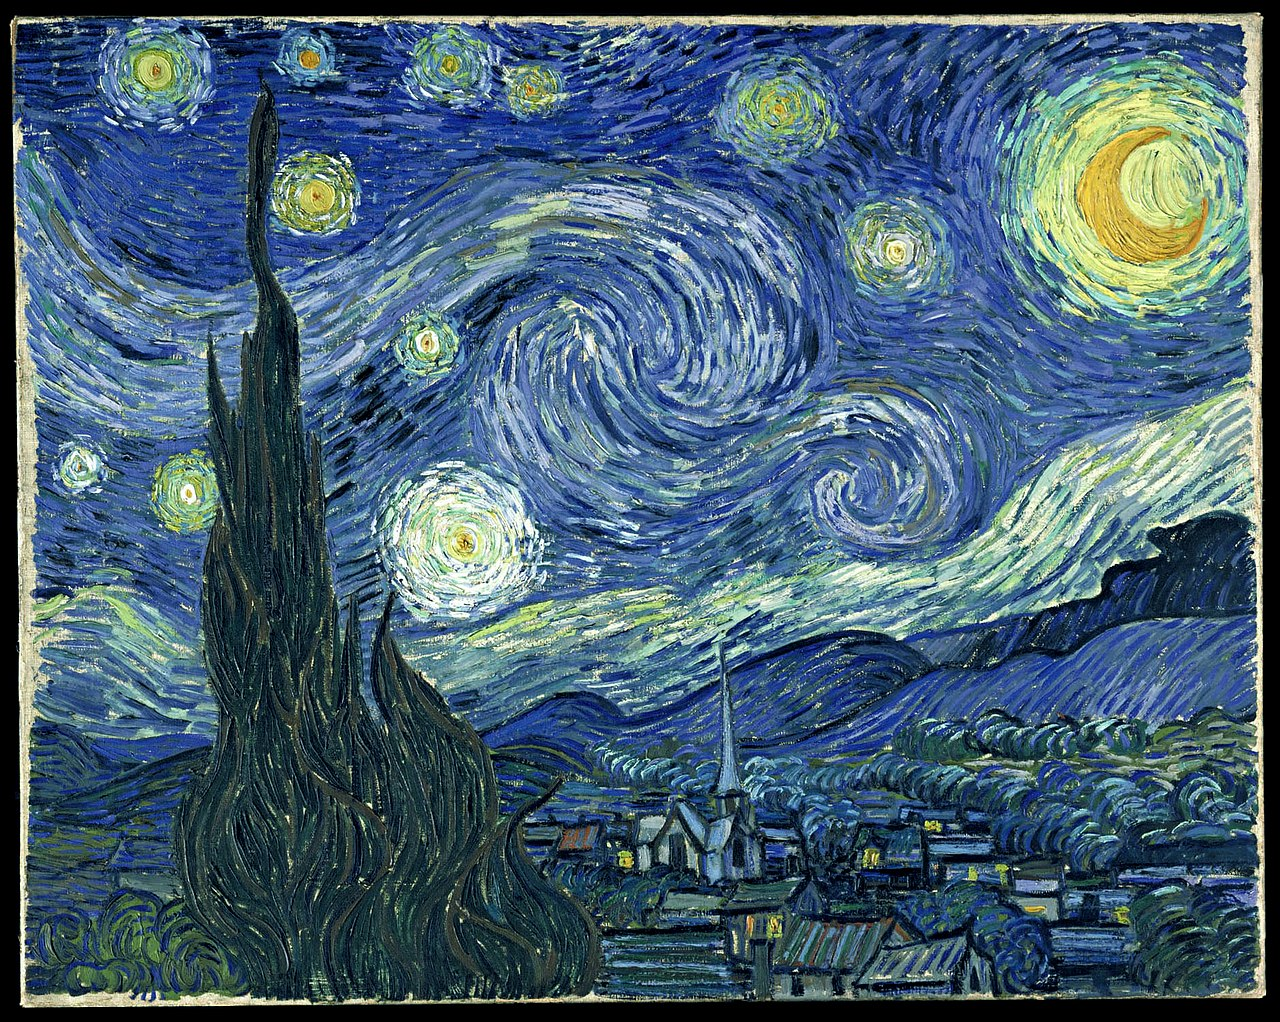 http://upload.wikimedia.org/wikipedia/commons/thumb/6/66/VanGogh-starry_night_ballance1.jpg/1280px-VanGogh-starry_night_ballance1.jpg?uselang=es